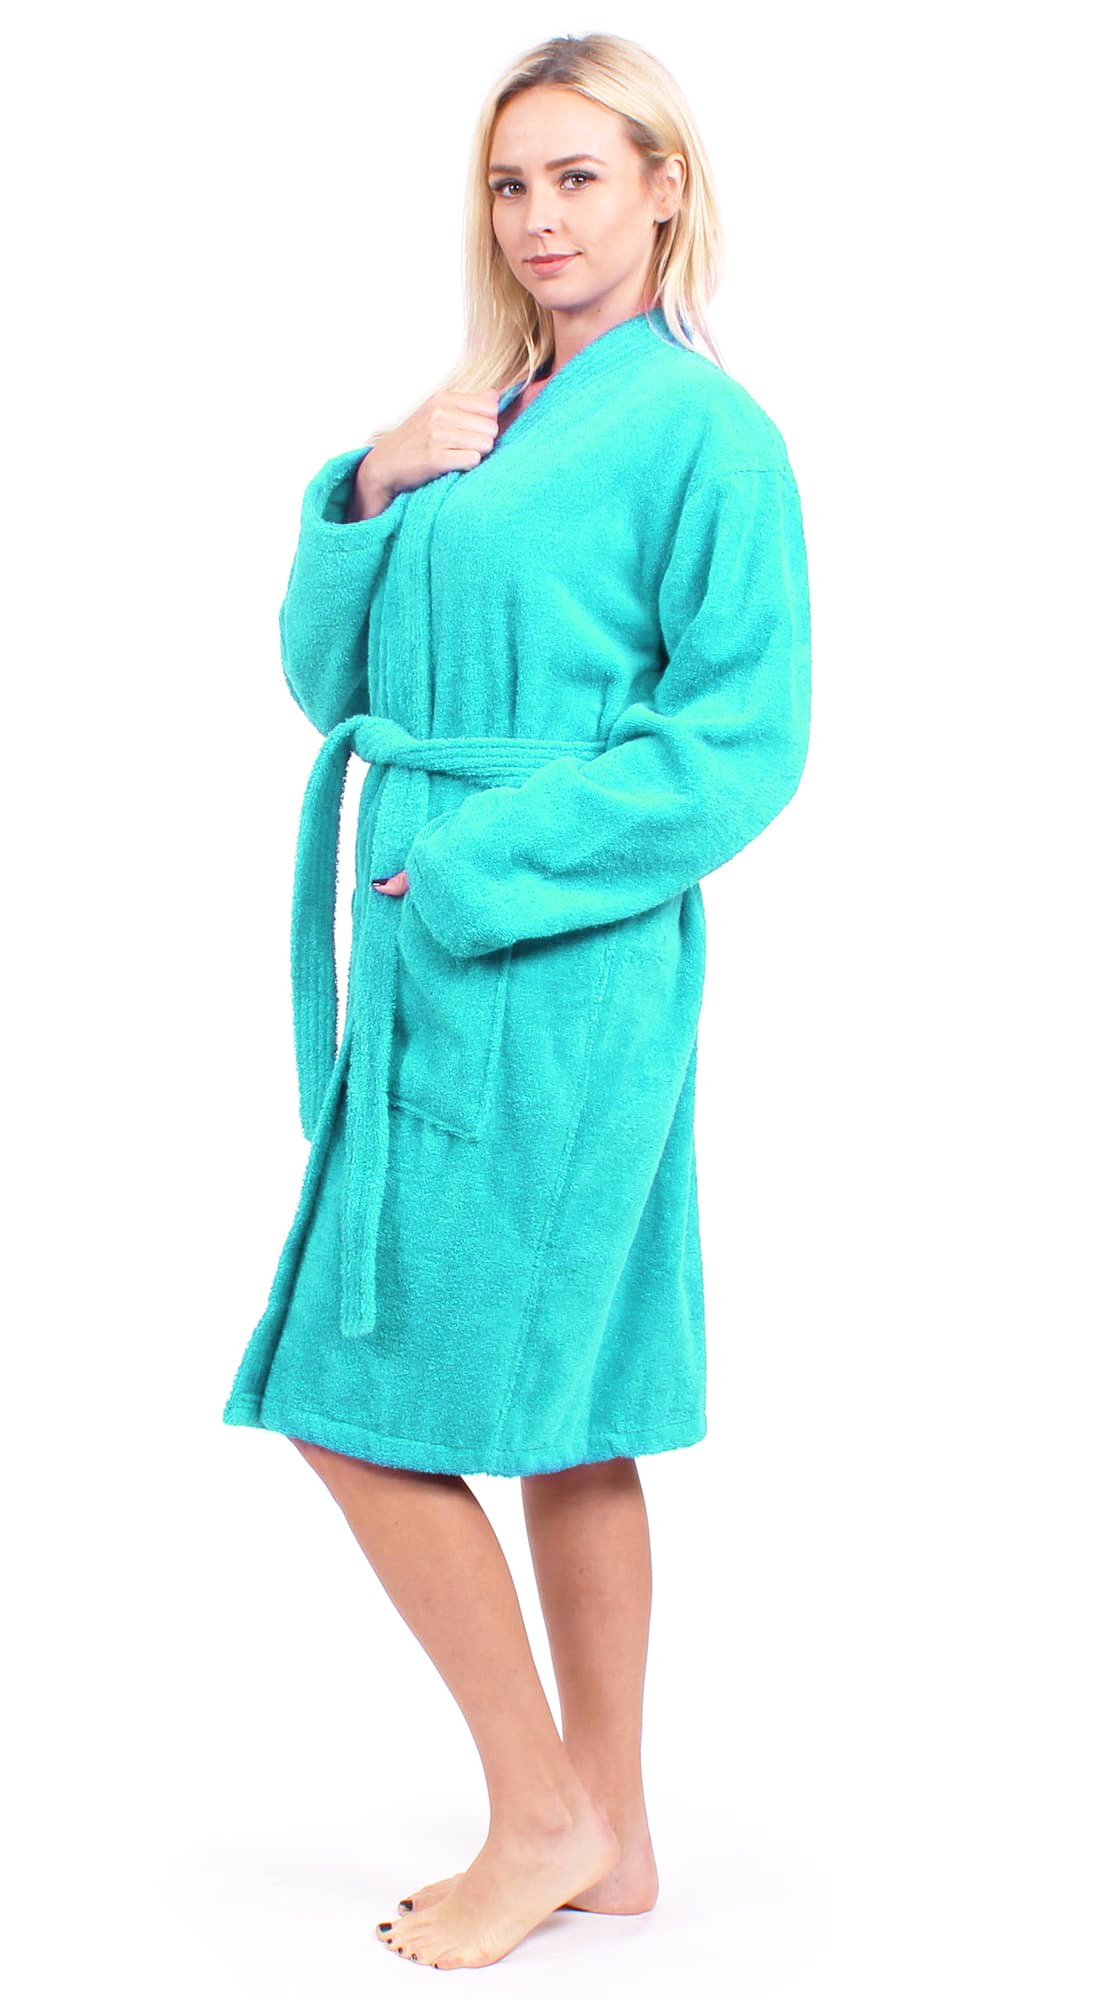 78b1ae272c Get Quotations · Turkuoise Women s Terry Cloth Robe 100% Premium Turkish Cotton  Terry Kimono Collar